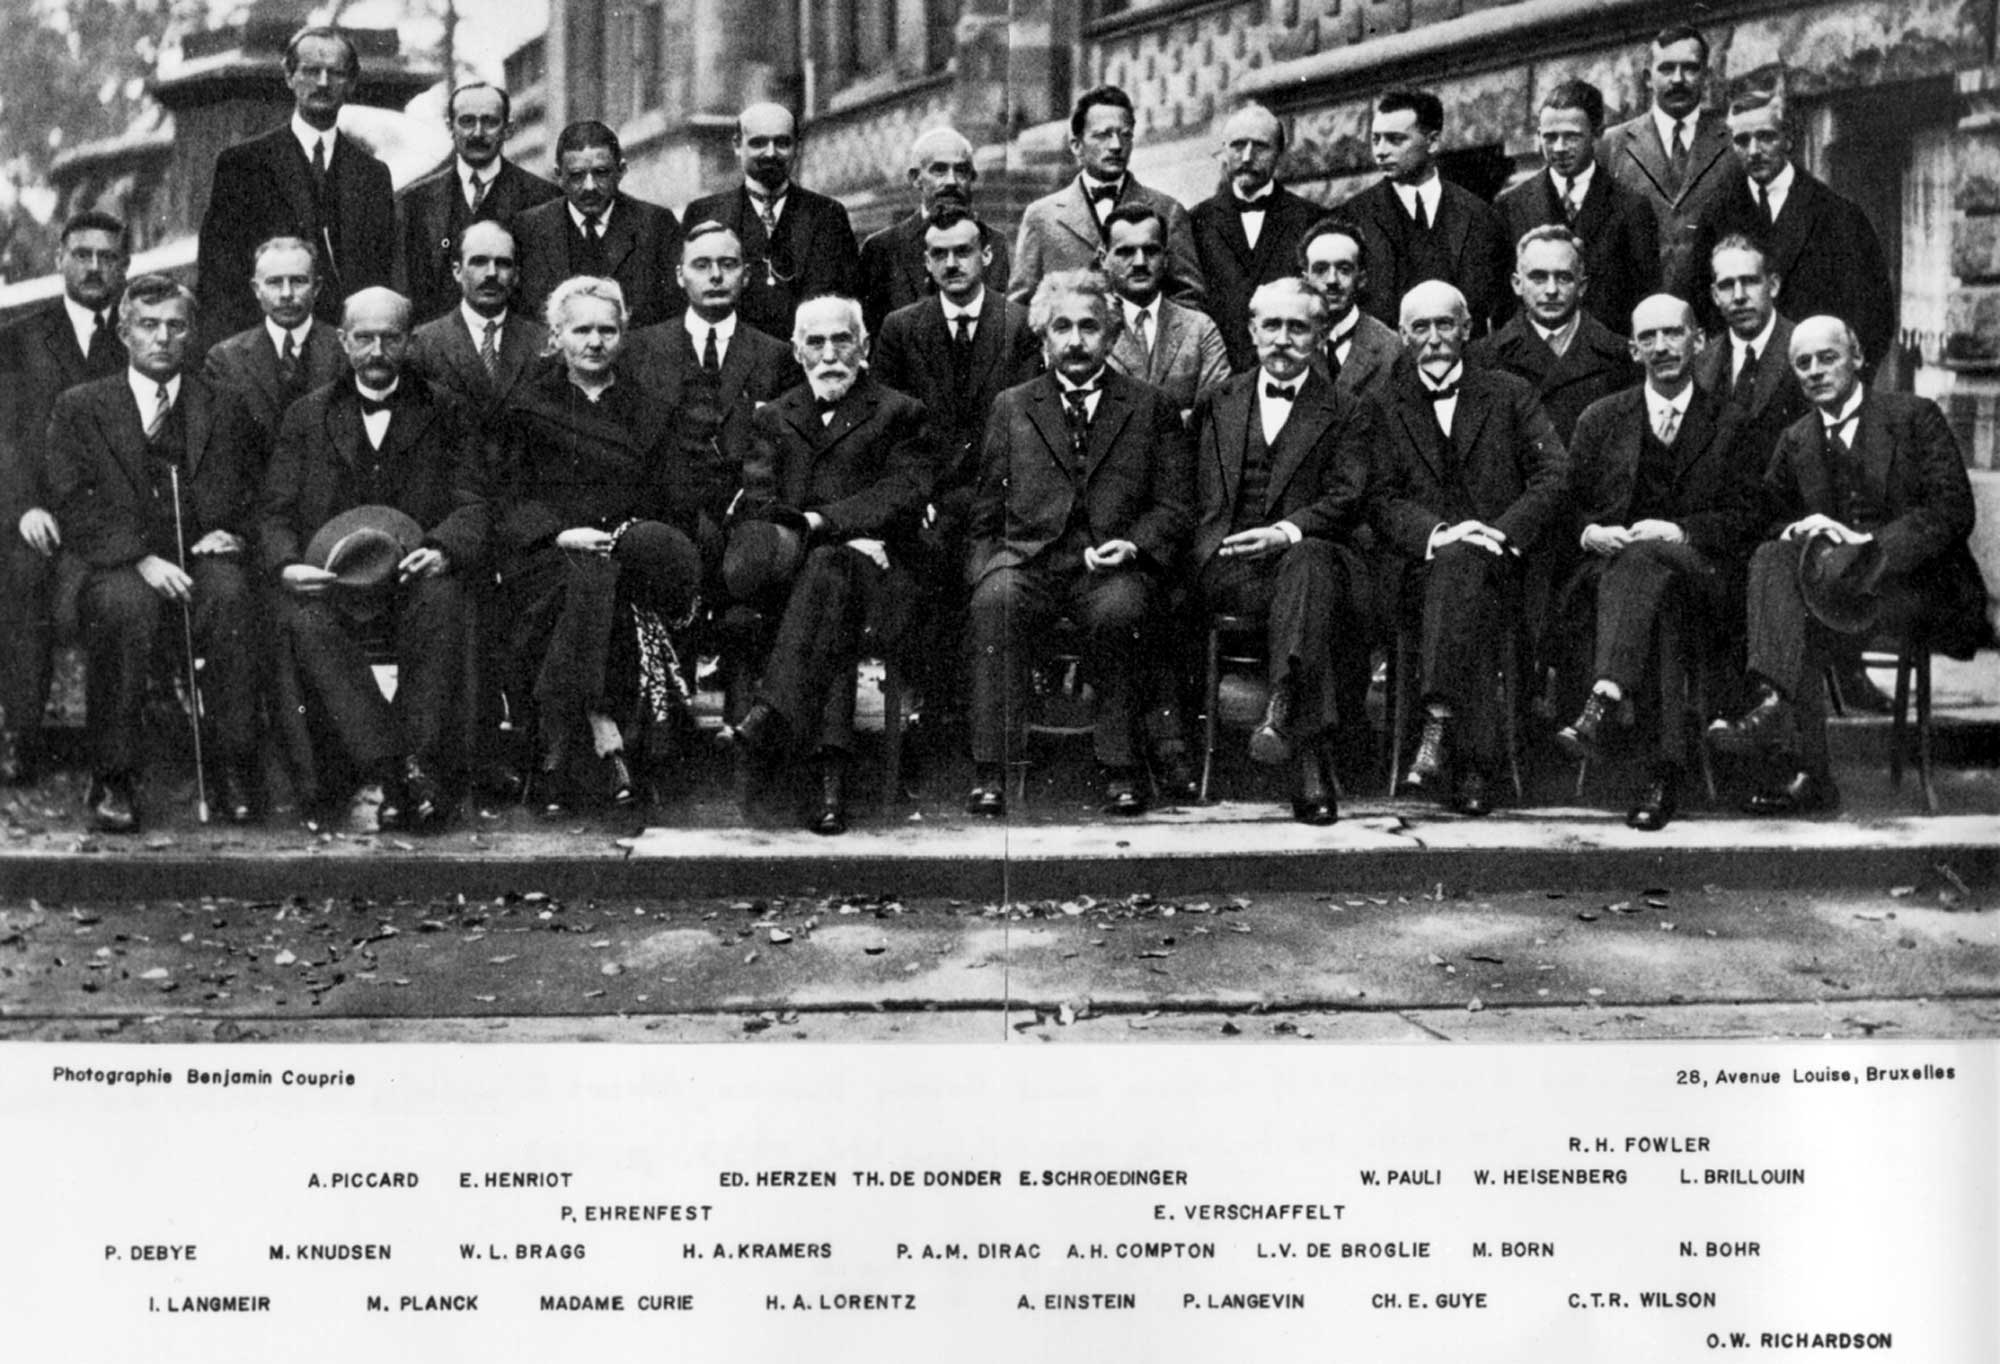 The smartest and famous group of individuals from 1927 Solvay conference